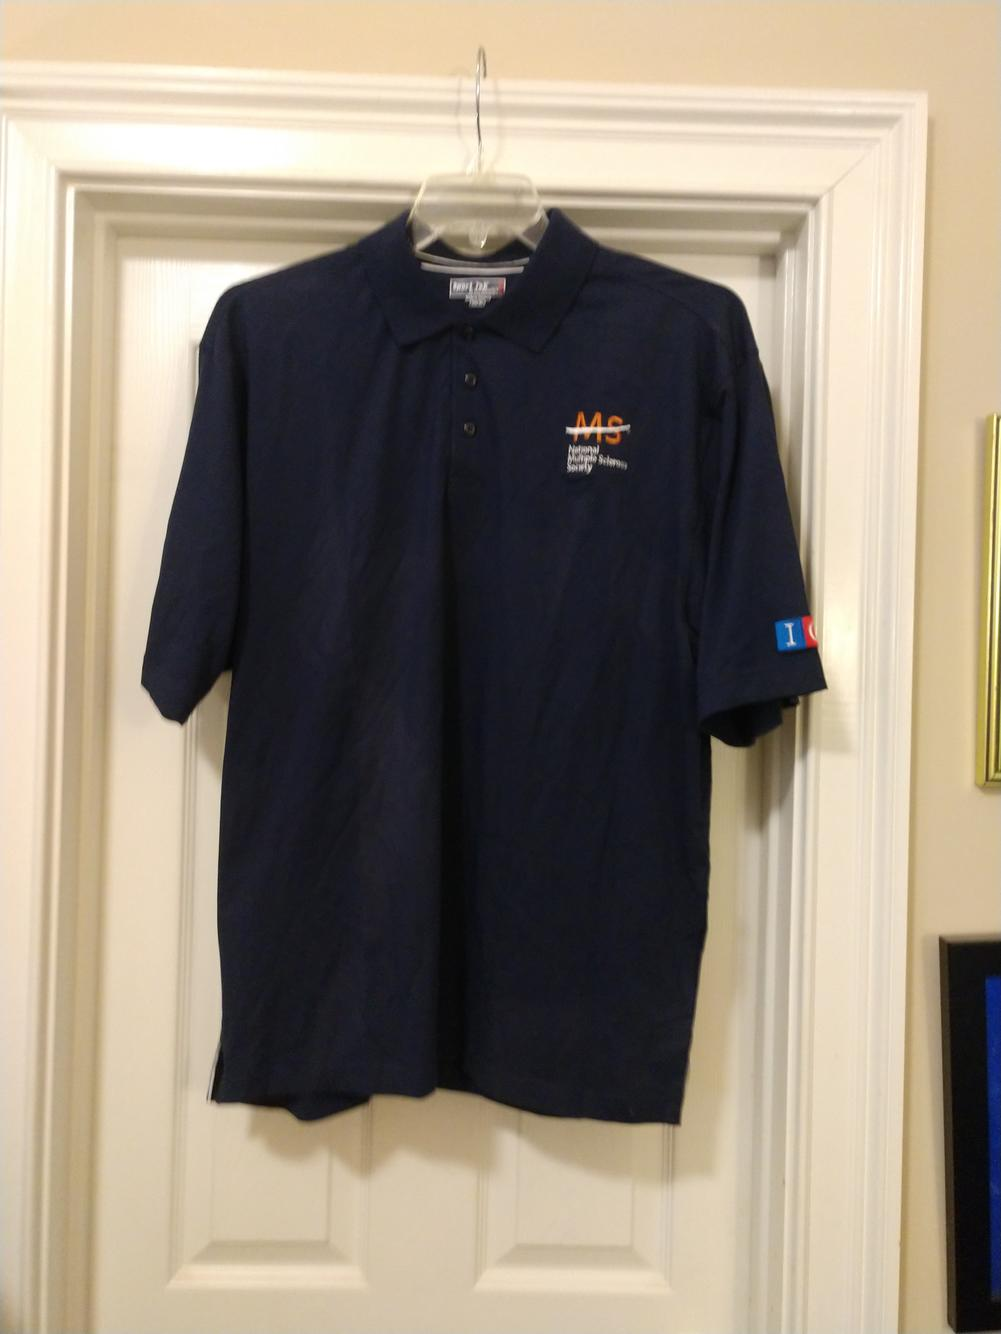 Sport Tek Blue Adult Men S Extra Large Shirt Golf Apparel Pentru alte sensuri, vedeți golf (dezambiguizare). sidelineswap